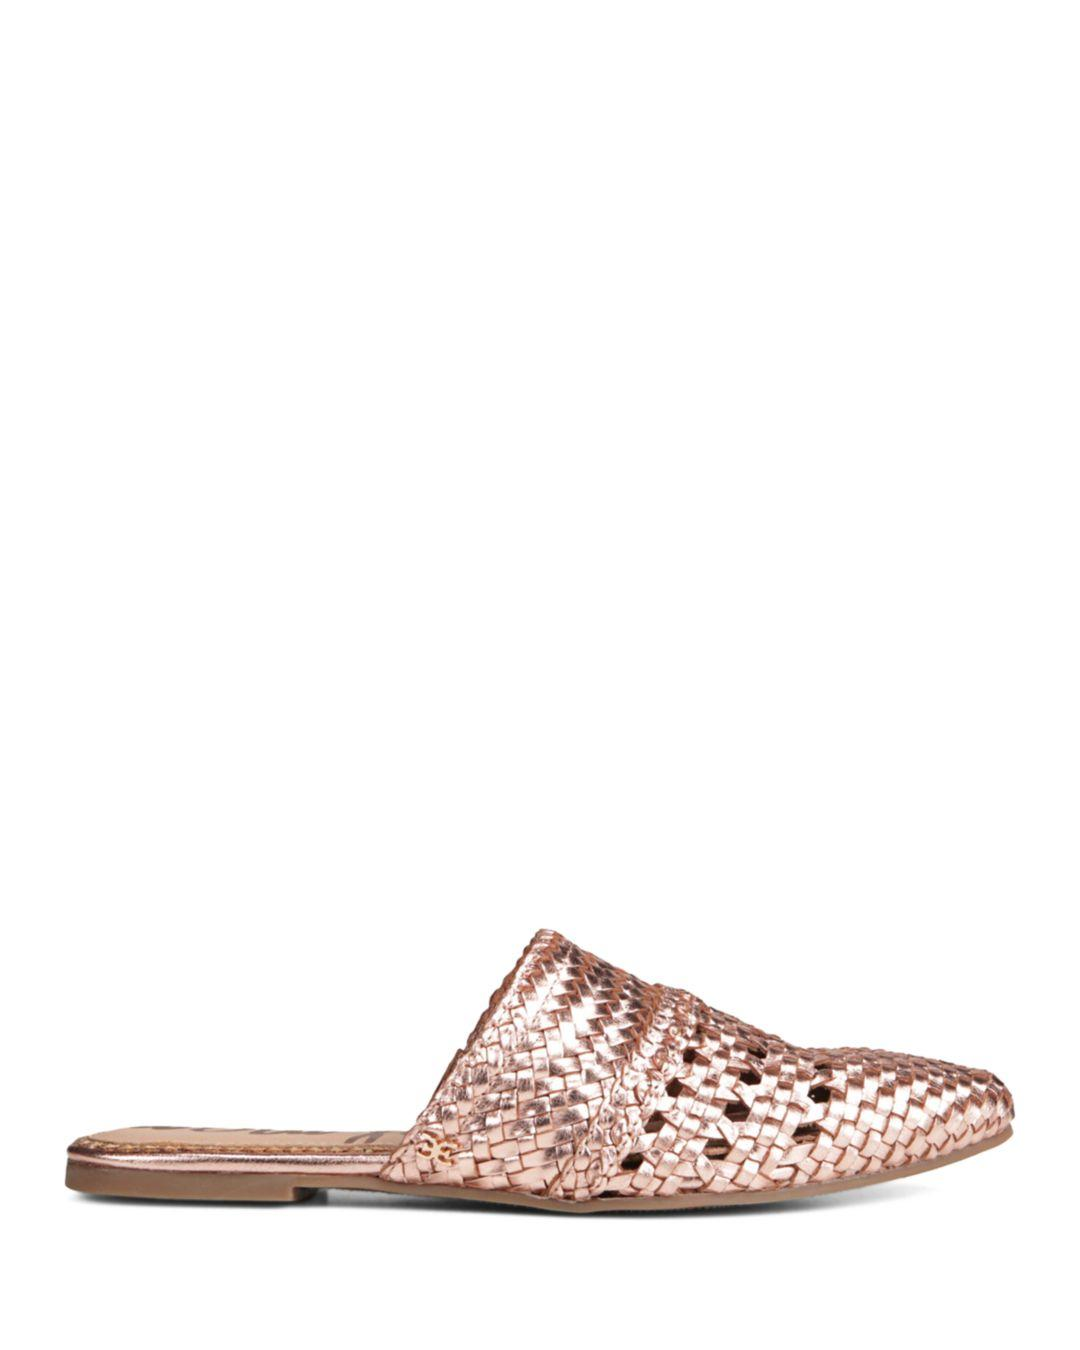 7666dd878 Lyst - Sam Edelman Women s Natalya Woven Leather Mules in Pink